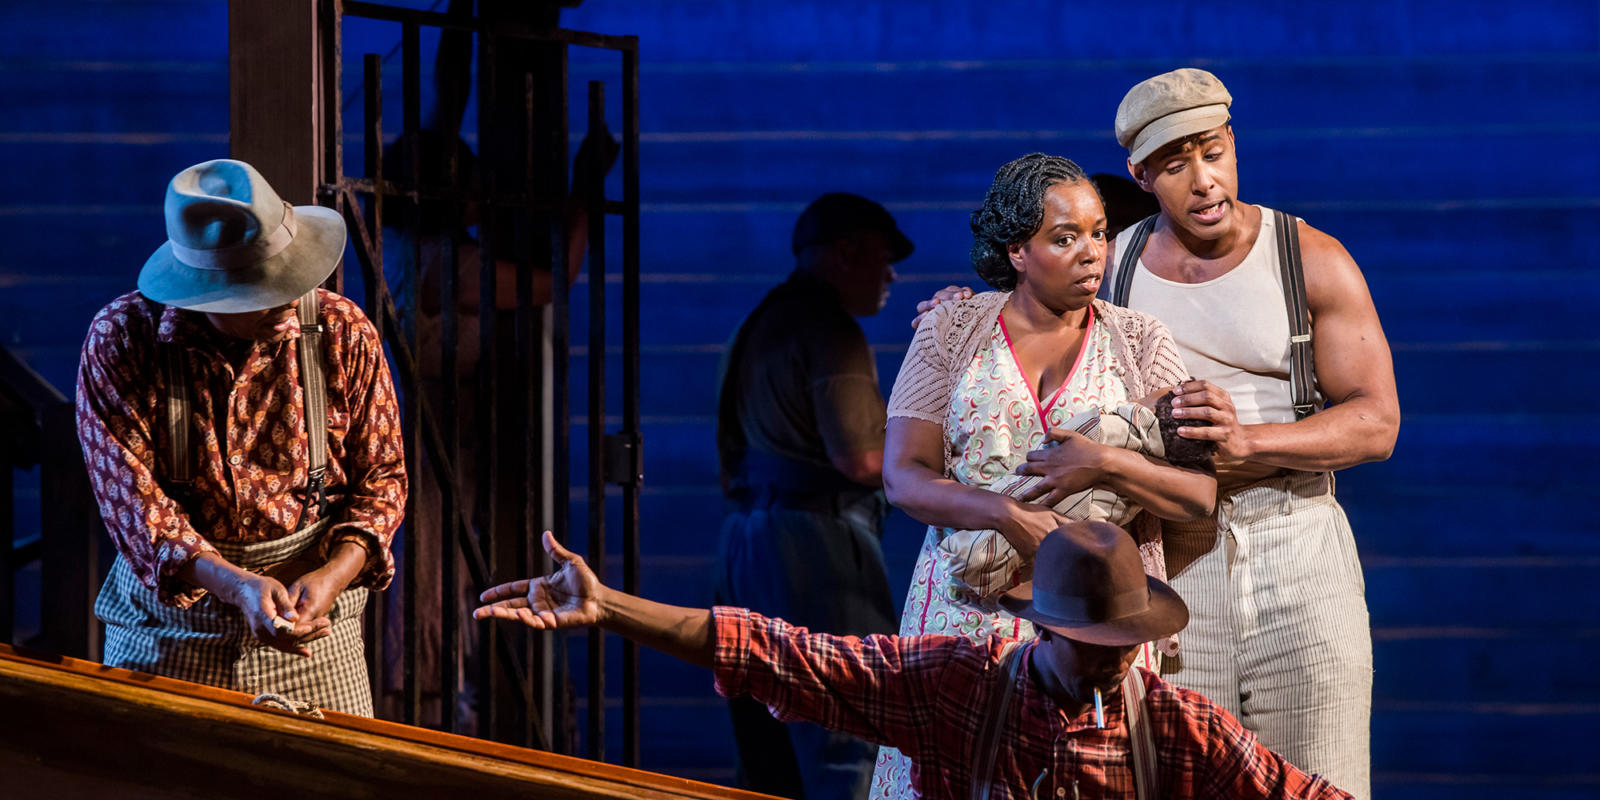 Nadine Benjamin as Clara in the 2018/19 season production of The Gershwins' Porgy and Bess (c) Tristram Kenton